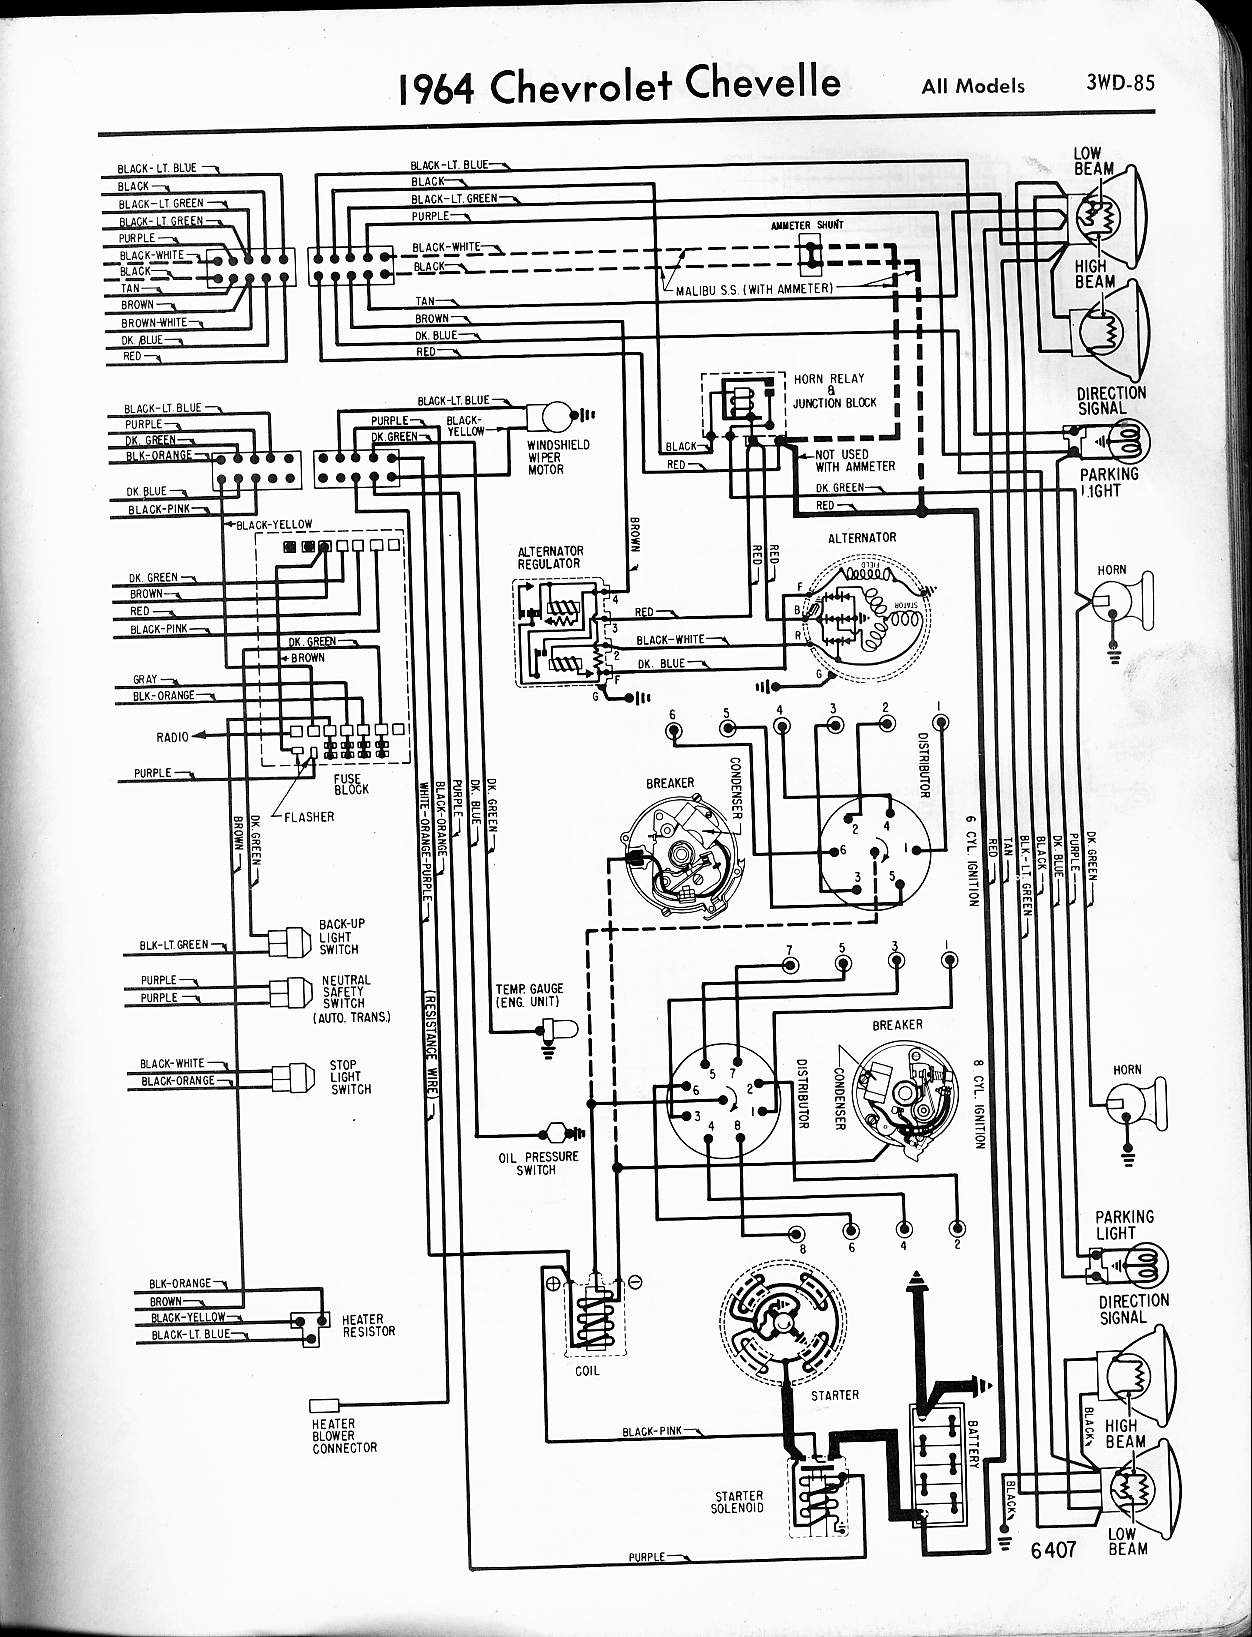 1969 Chevelle Dash Wiring Diagram Schematics Diagrams 1970 Dodge Challenger Tach Chevy Rh Wizard Com Horn